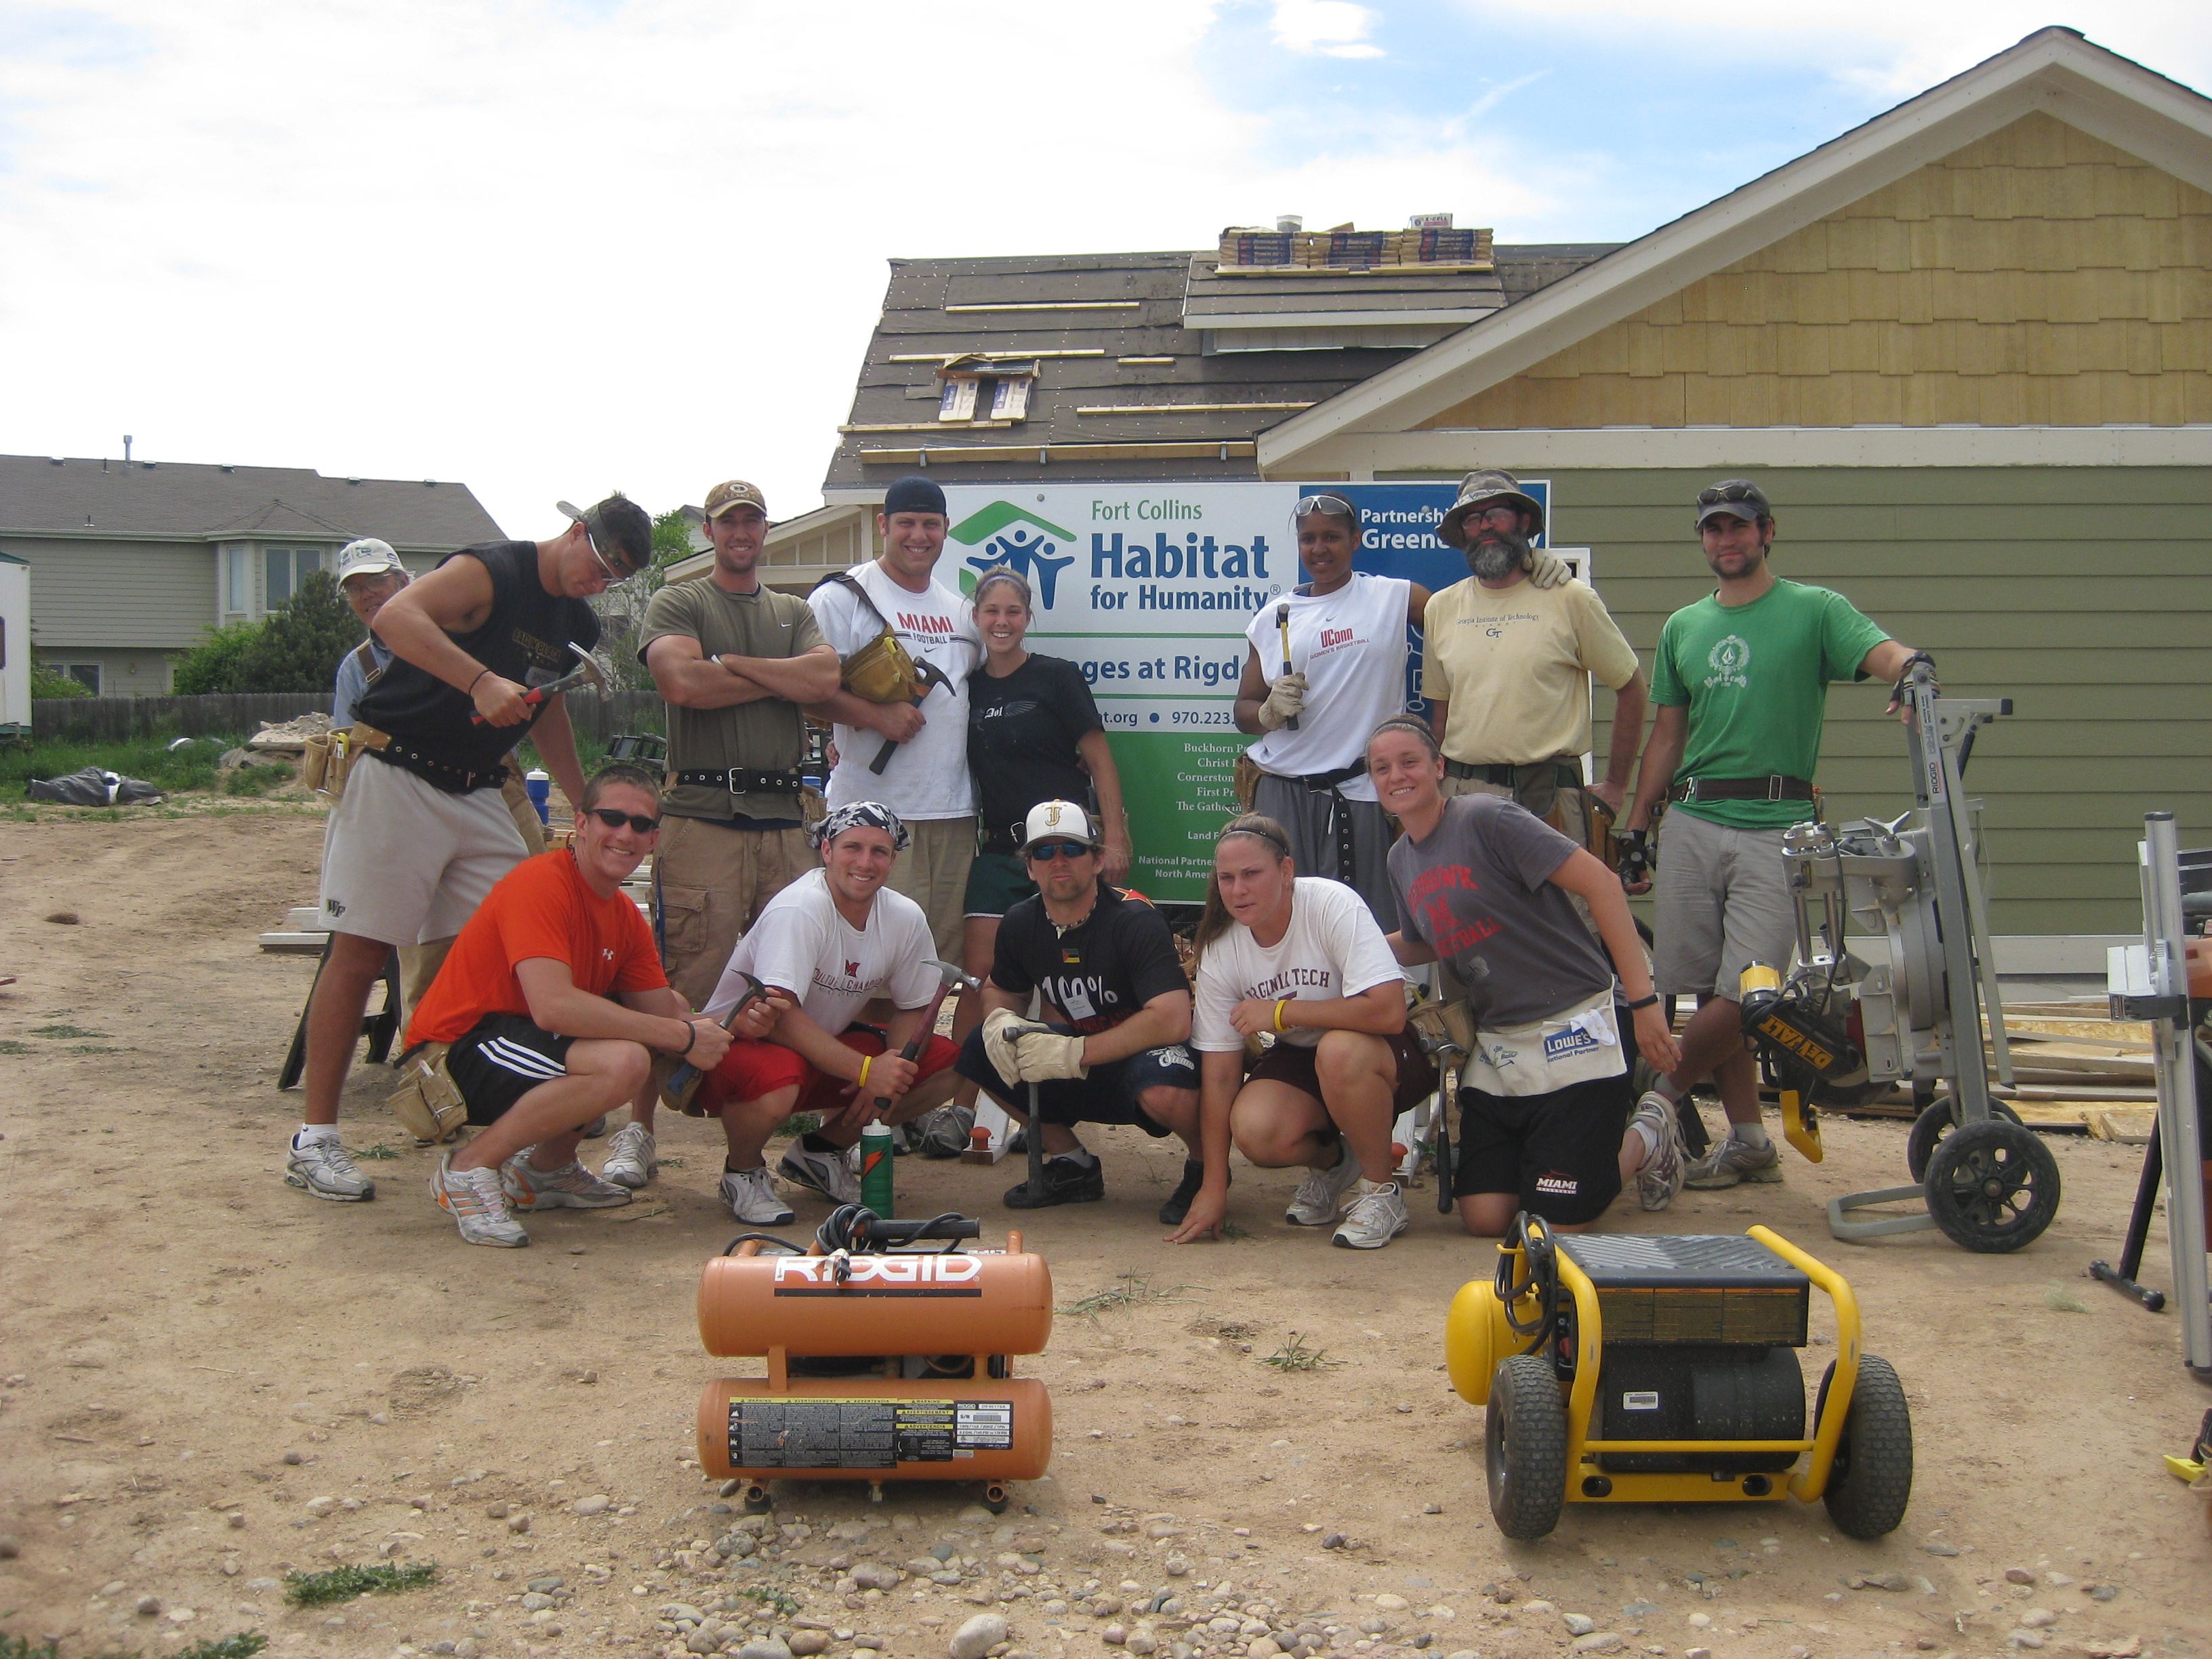 We were exhausted but glad to help out and it was really cool to use the nail guns!